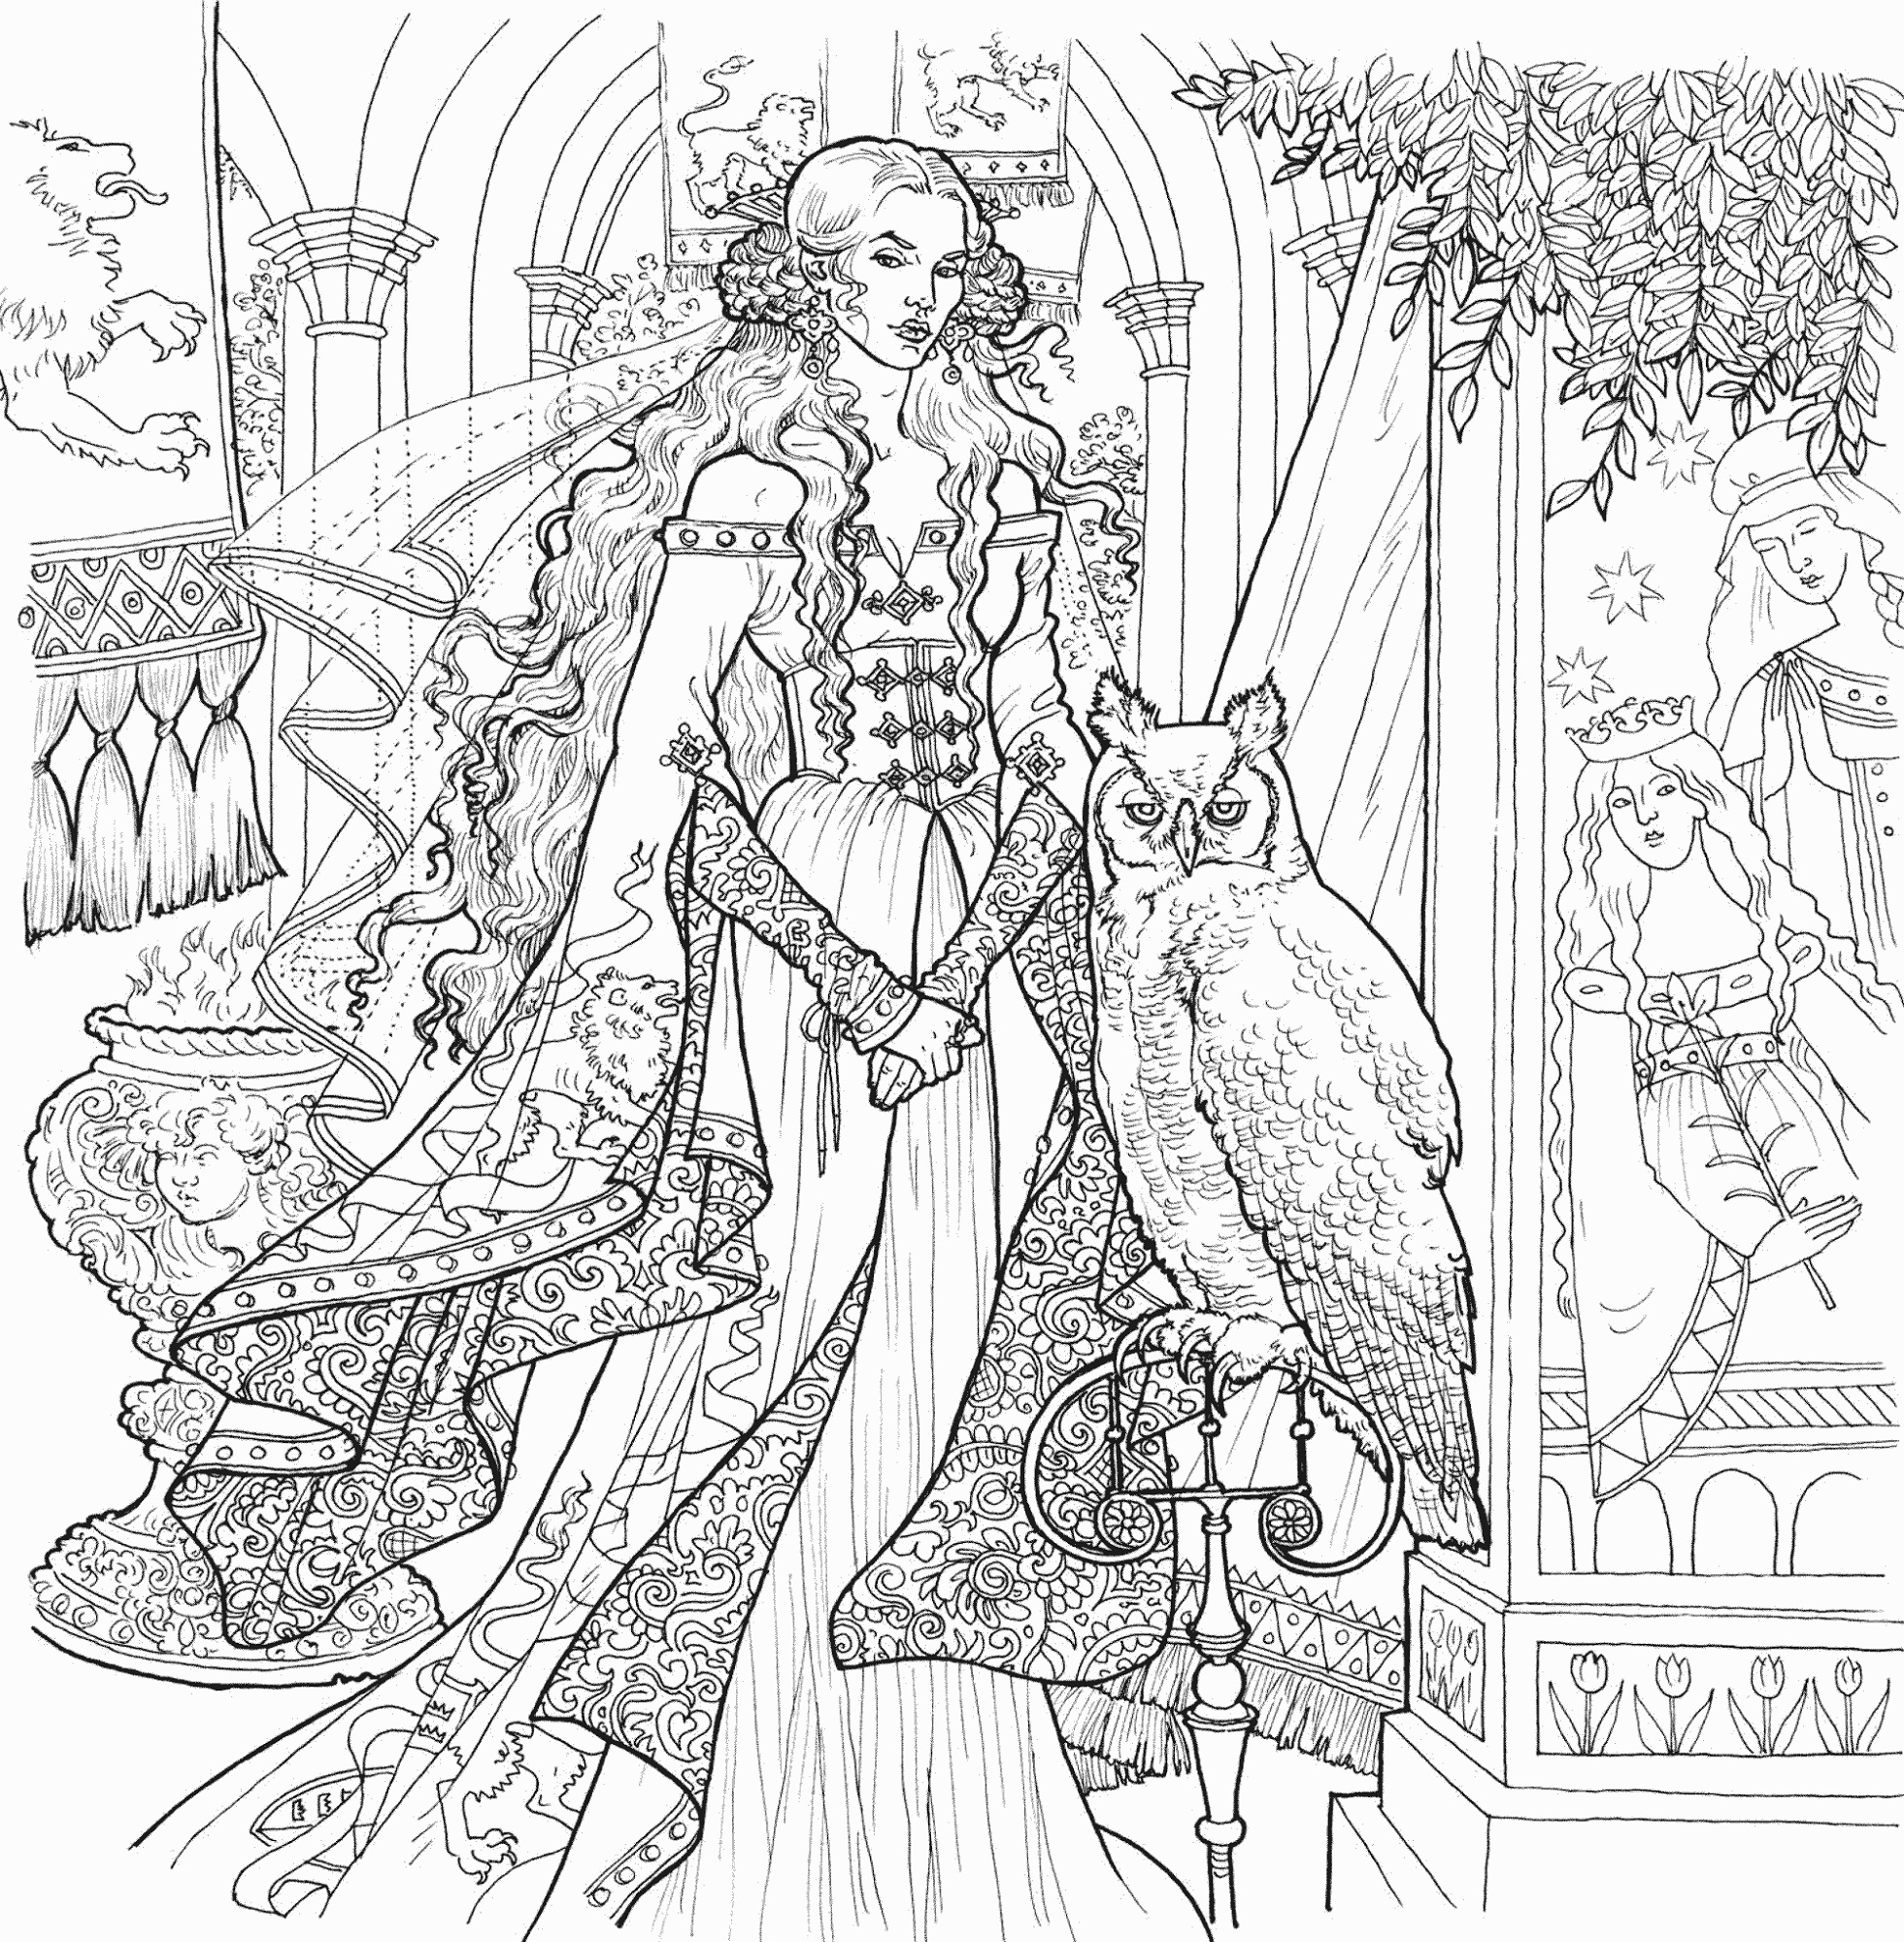 coloring games for adults more adult colouring pages here on gamezplay coloring for games adults